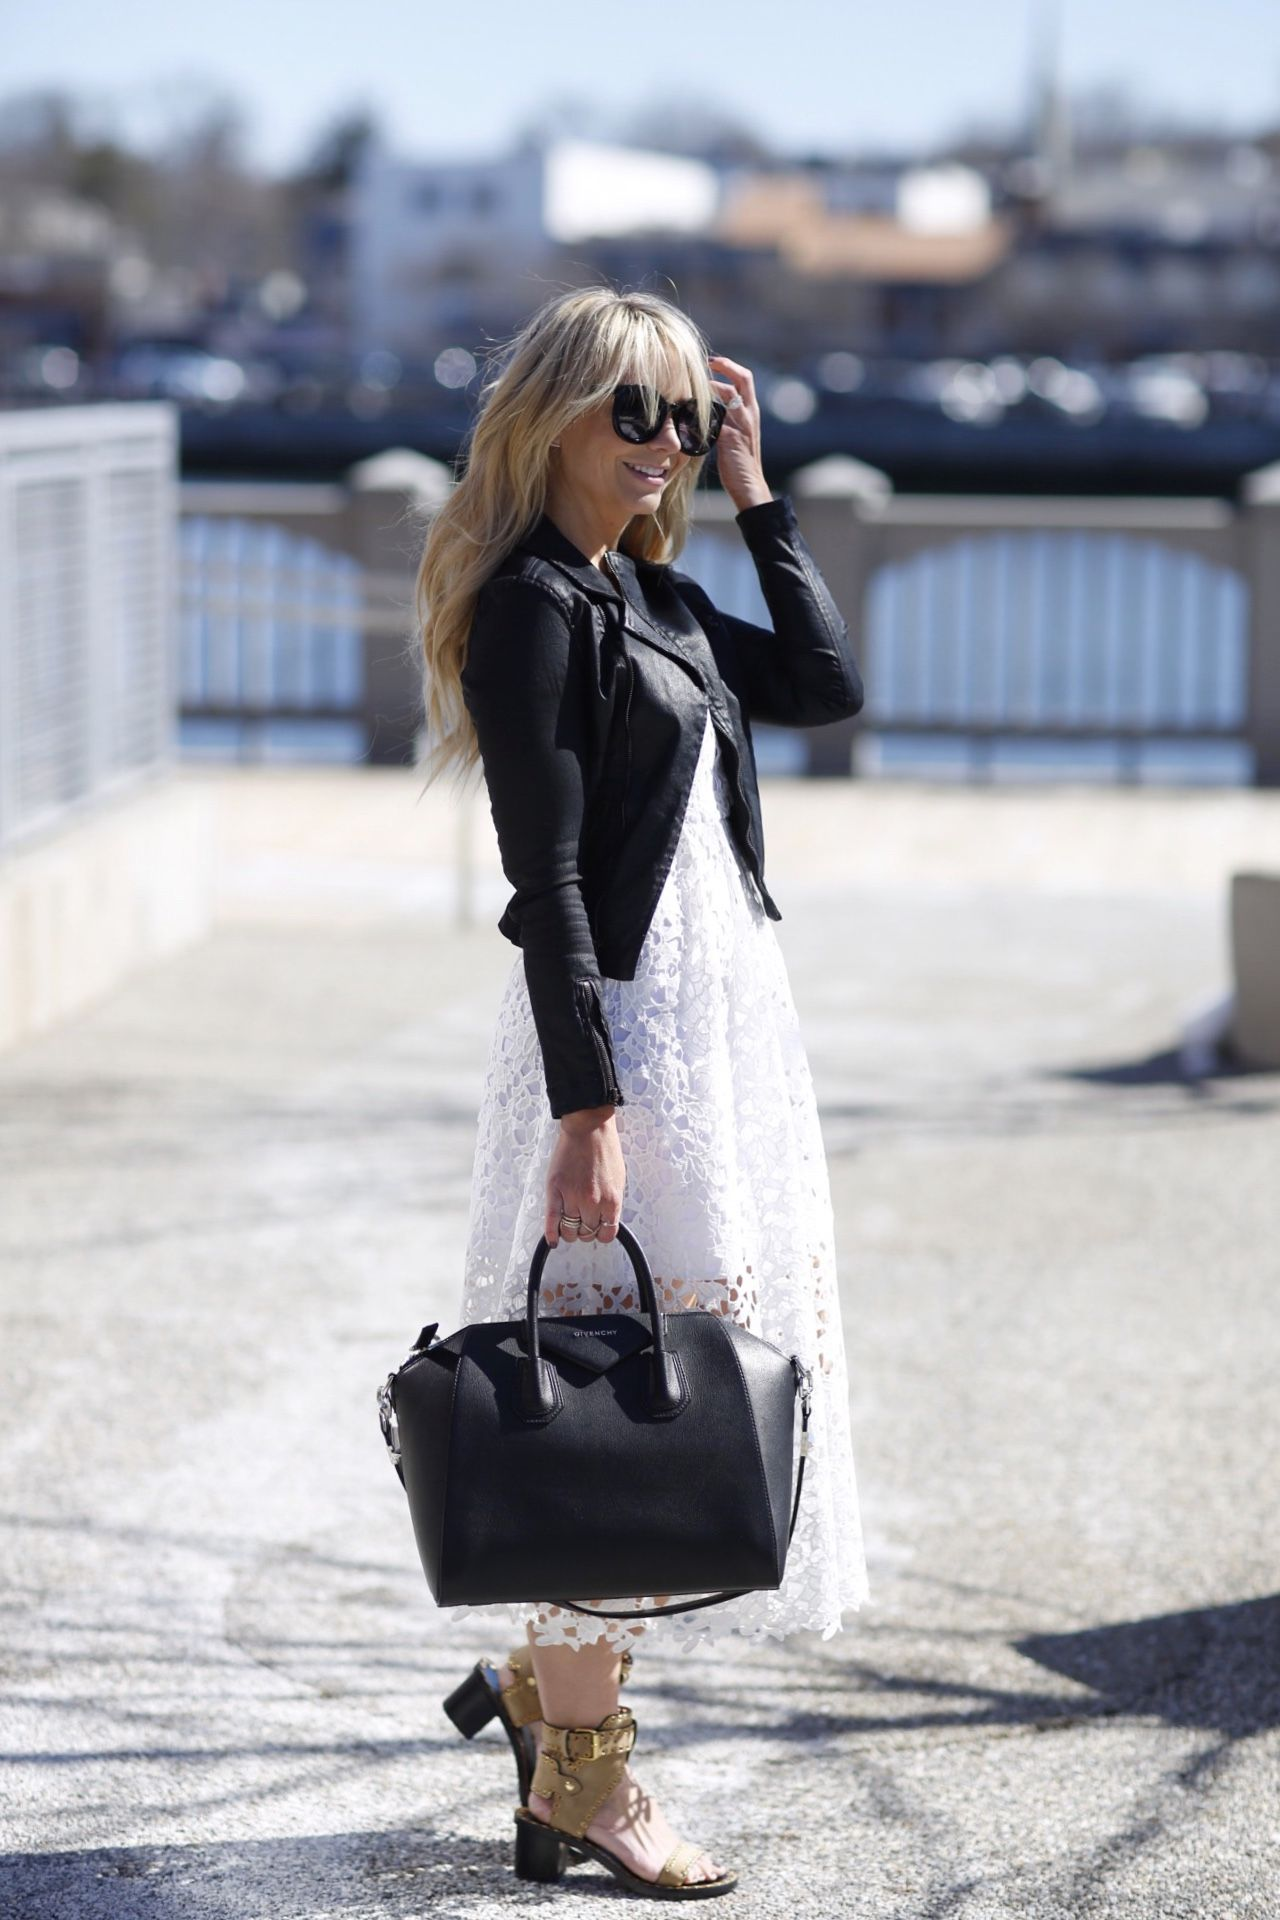 Every girl needs this white lace dress in her closet. Looks more casual paired with this edgy black jacket.